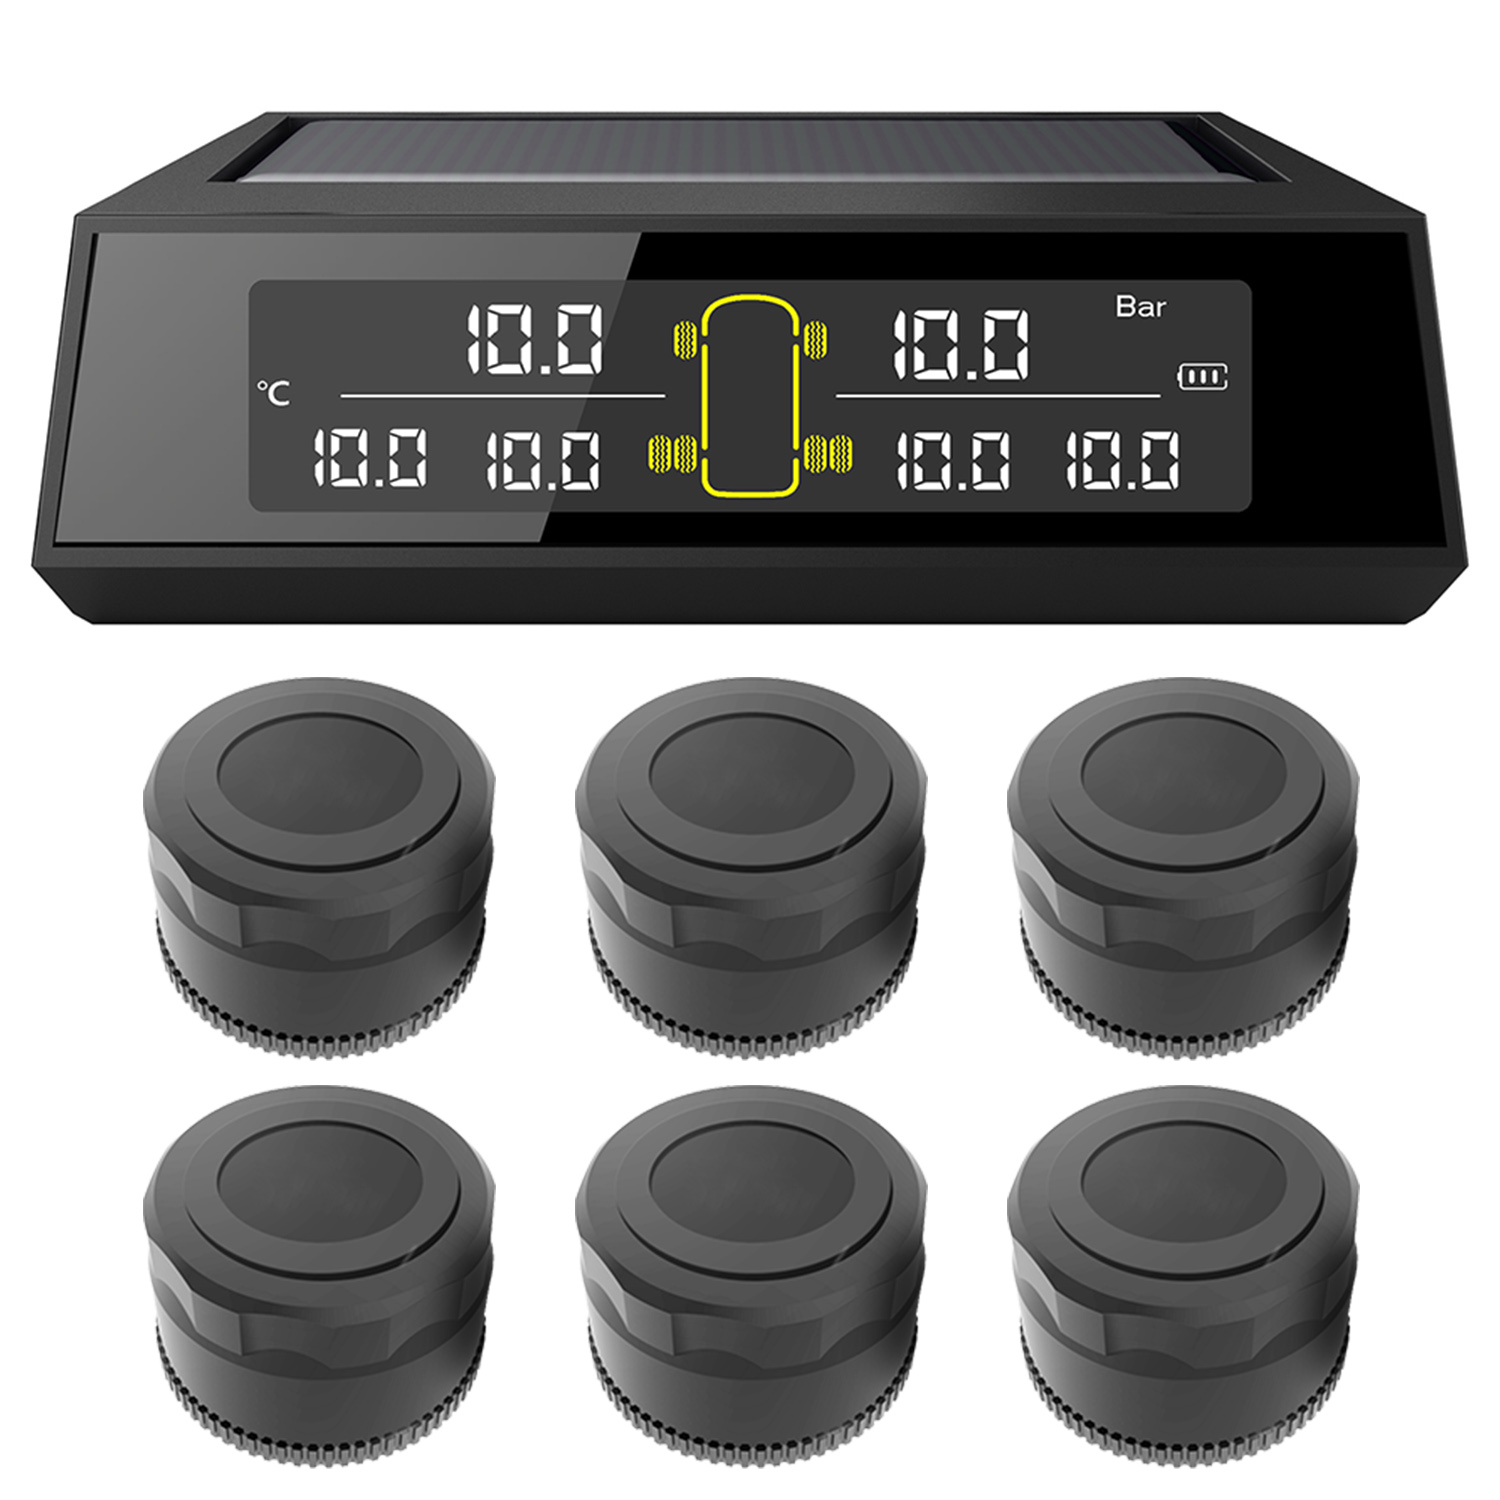 Wireless Solar Power TPMS Tire Pressure Monitoring System RV Truck TPMS with 6 External Sensors for 4-6 Tires Car RV Truck Tow Trailers 0-130PSI